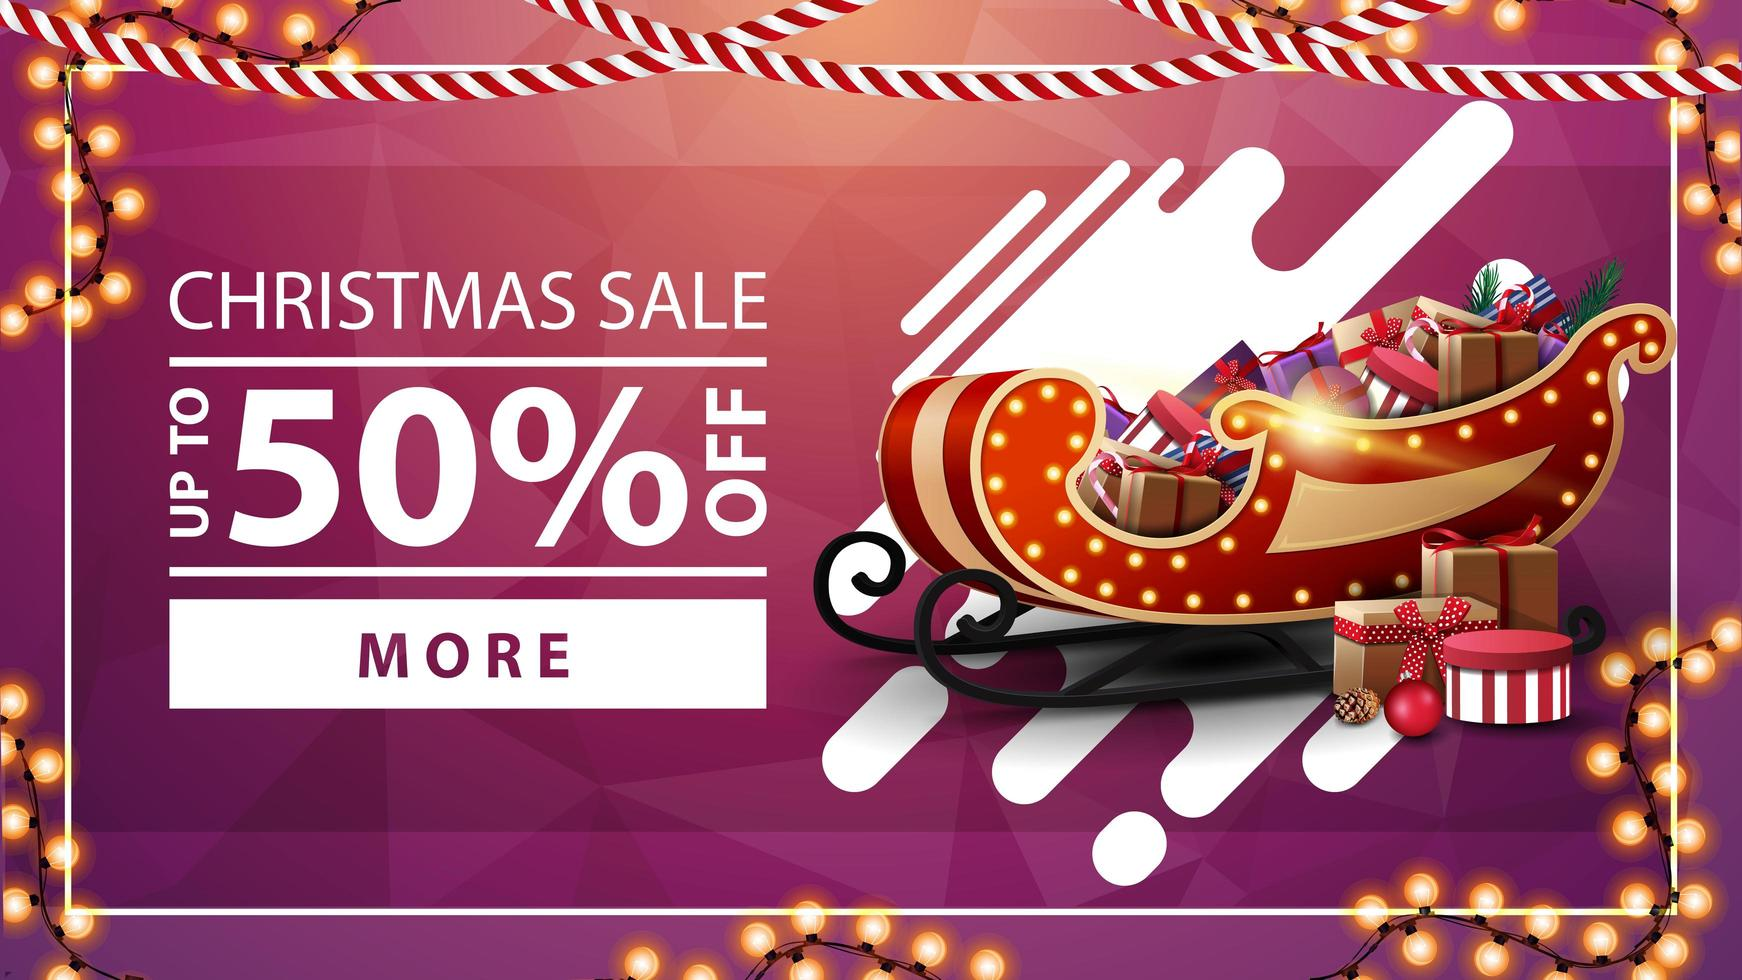 Christmas sale, up to 50 off, pink discount banner with garlands, button and Santa Sleigh with presents vector